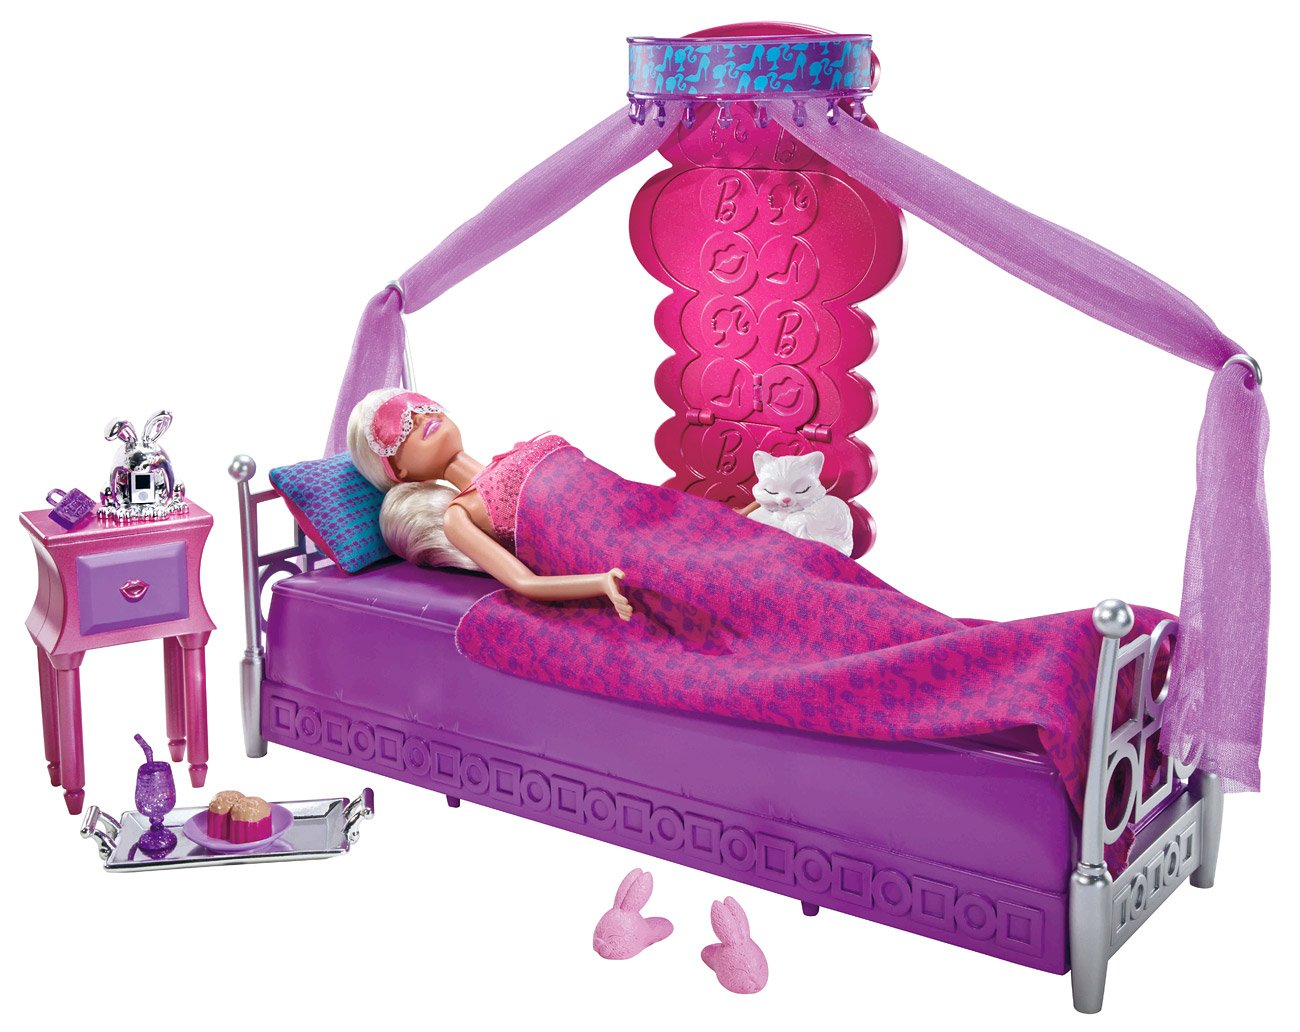 Barbie doll bedroom set - Amazon Com Barbie Bed To Breakfast Deluxe Bedroom And Doll Set Toys Games